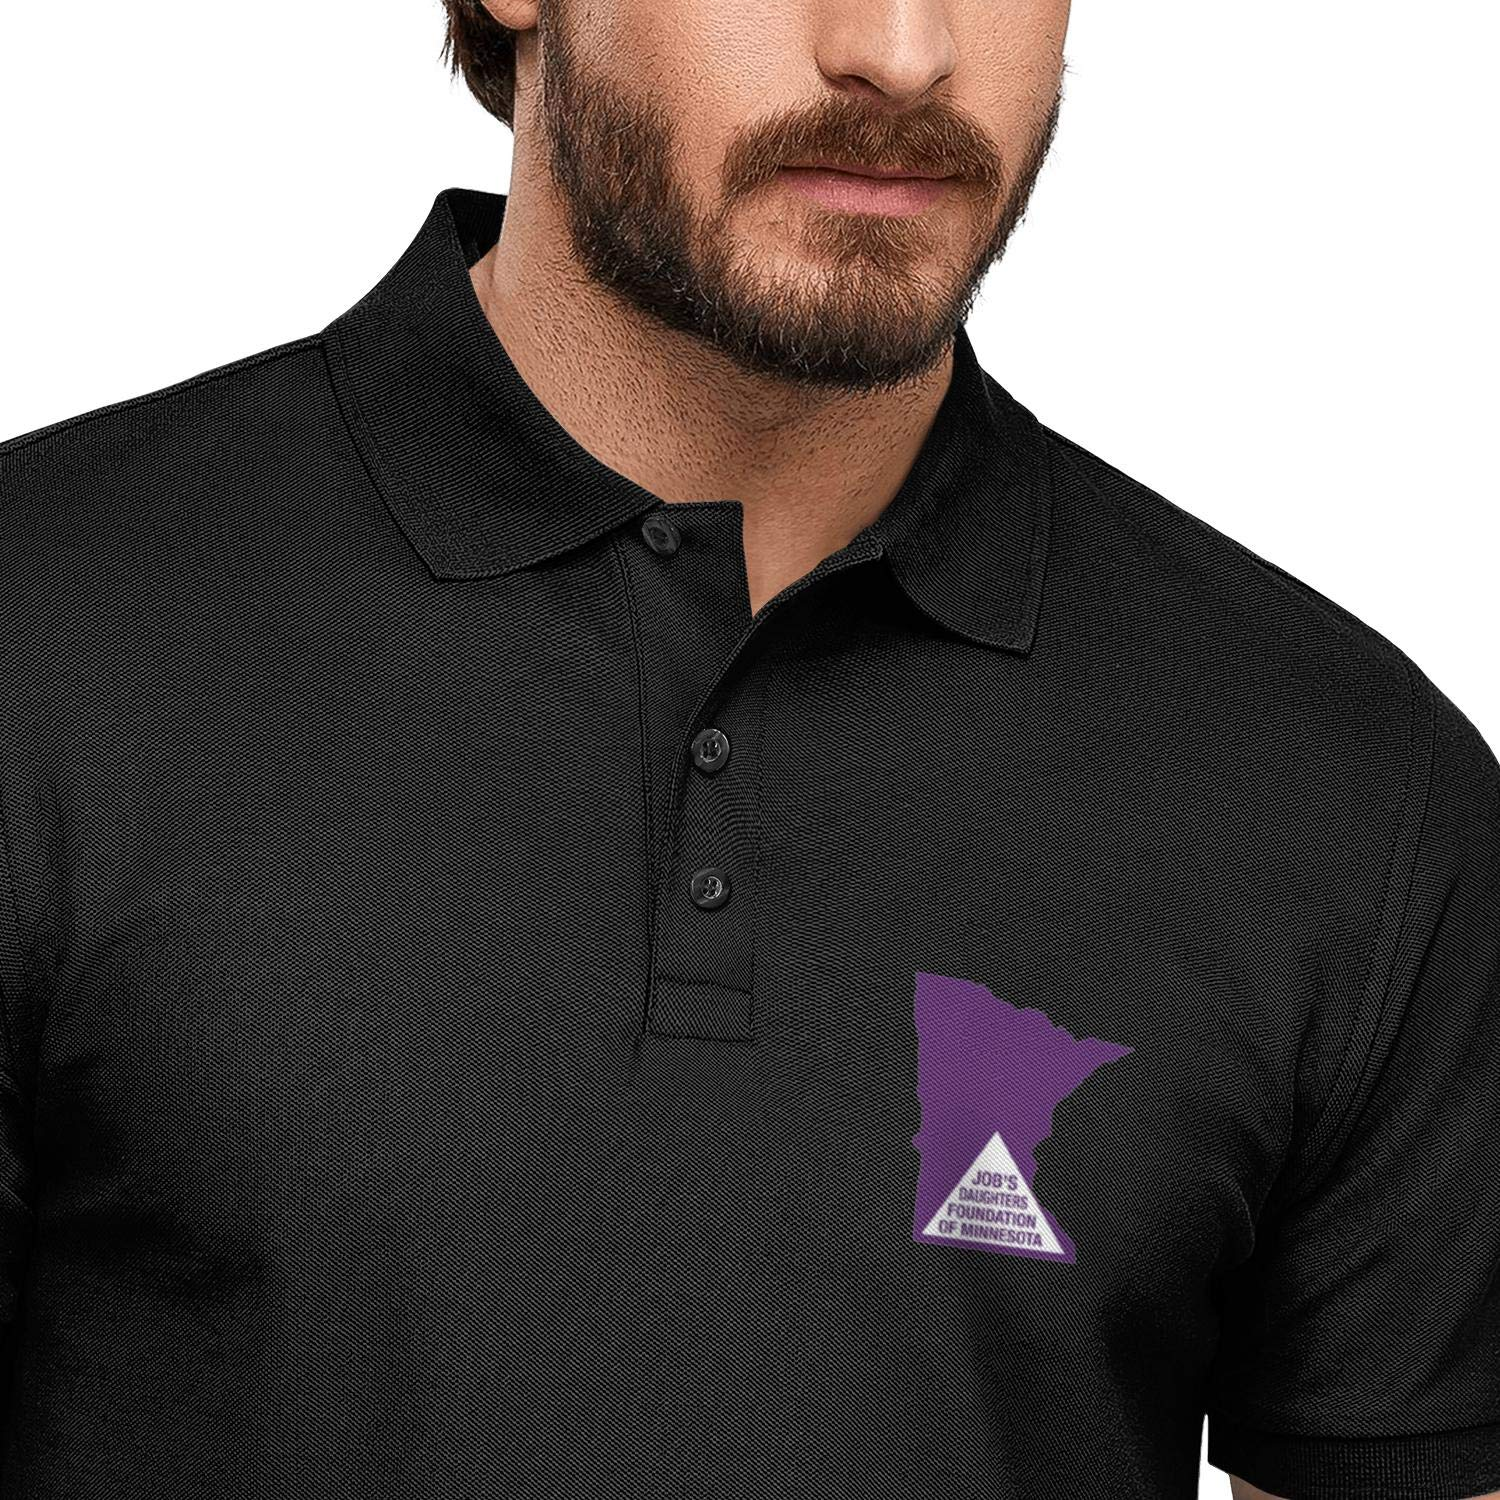 WENL Jobs Daughters Foundation of Minnesota Printed Mens Polo Shirt Funky Quick-Dry Shirts